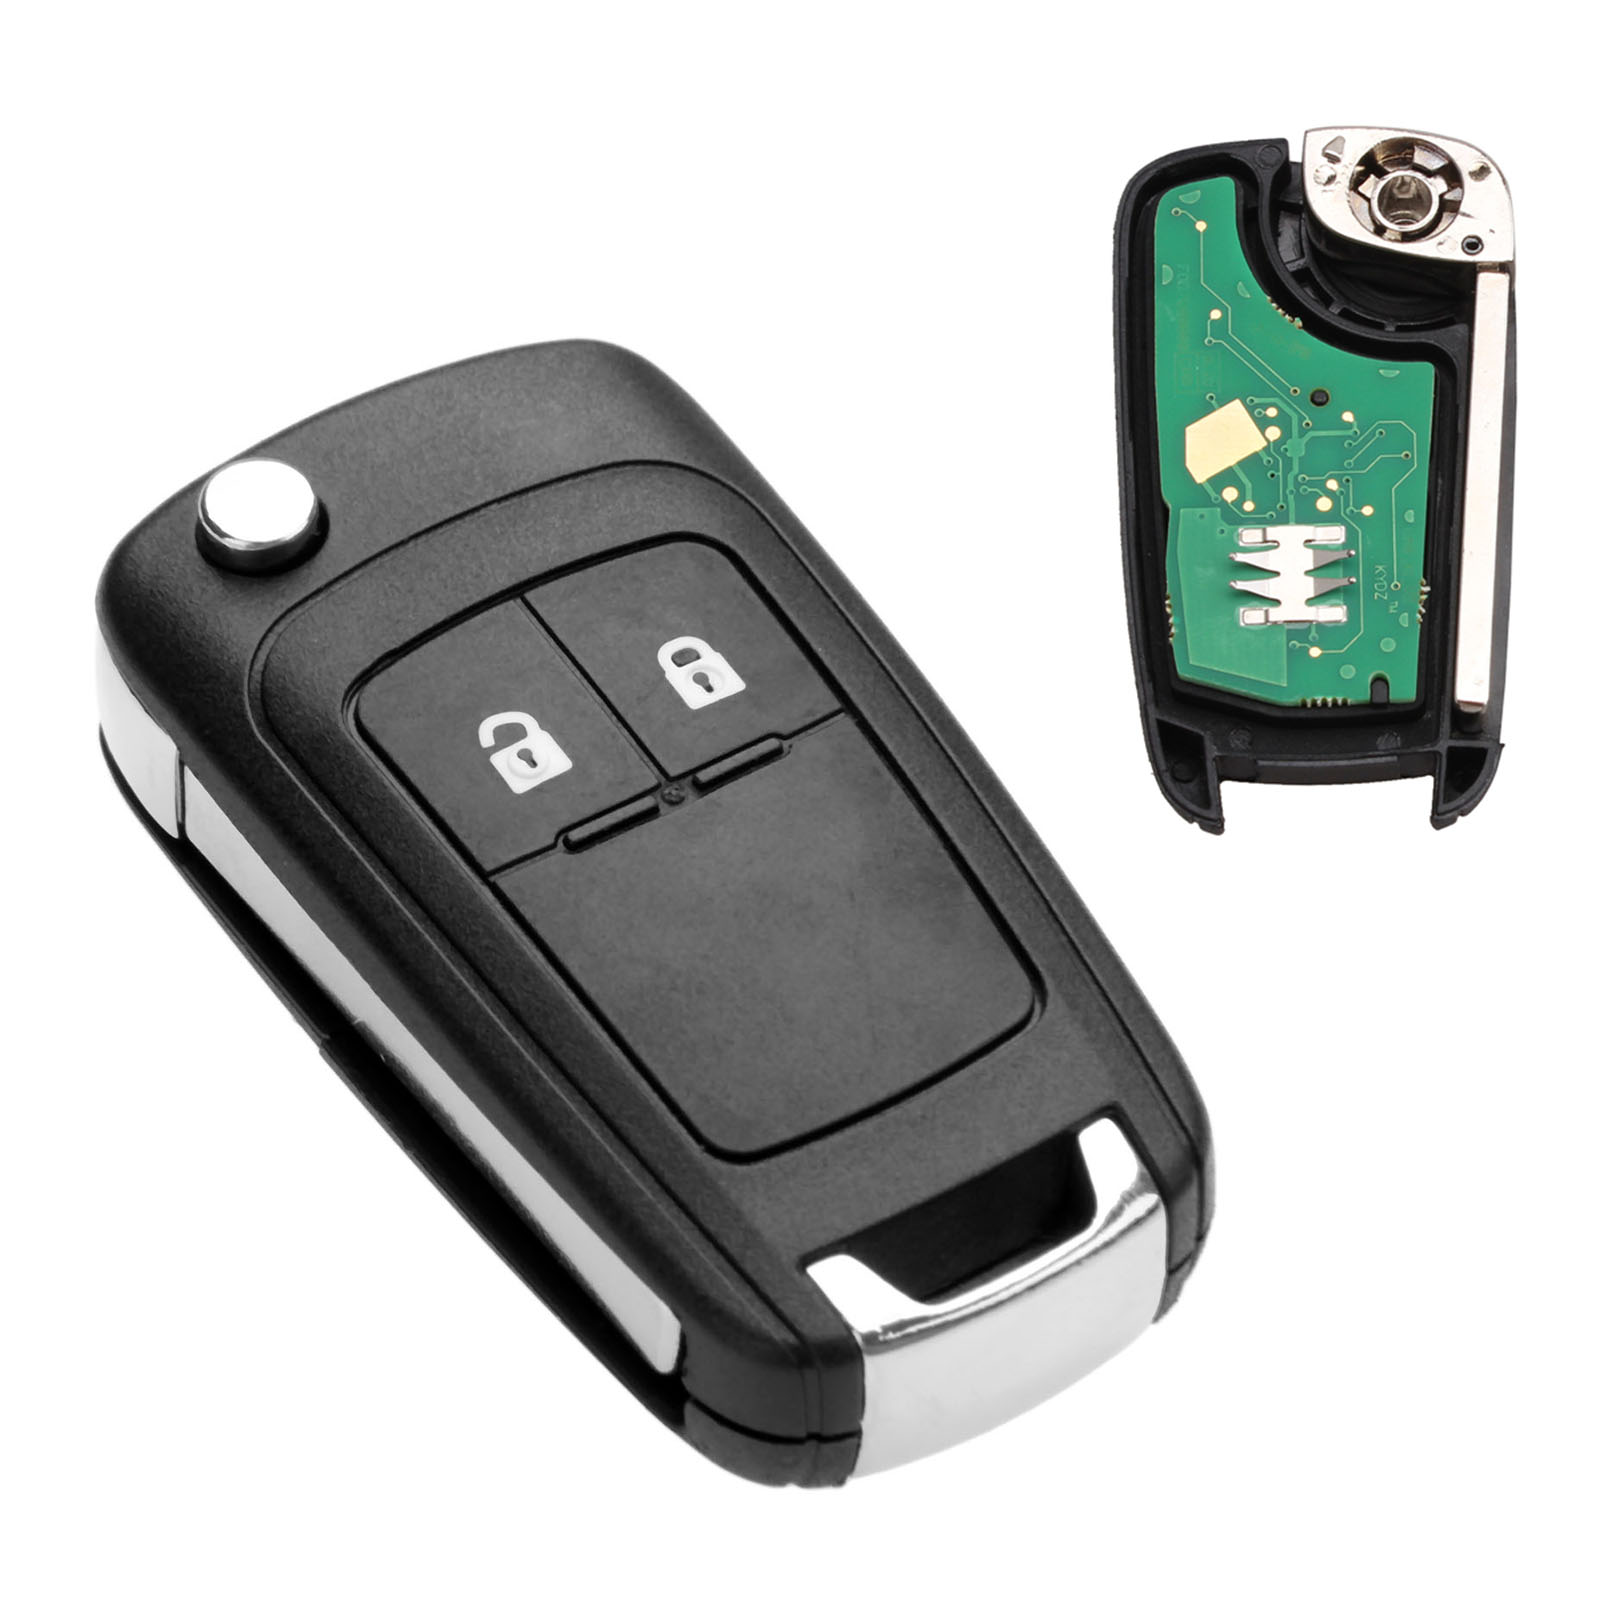 Yetaha 2 Buttons Smart <font><b>Remote</b></font> <font><b>Key</b></font> With ID46 7941 Chip For <font><b>Opel</b></font> Vauxhall 433 MHz For Astra J Corsa E Insignia Zafira C 2009-2016 image